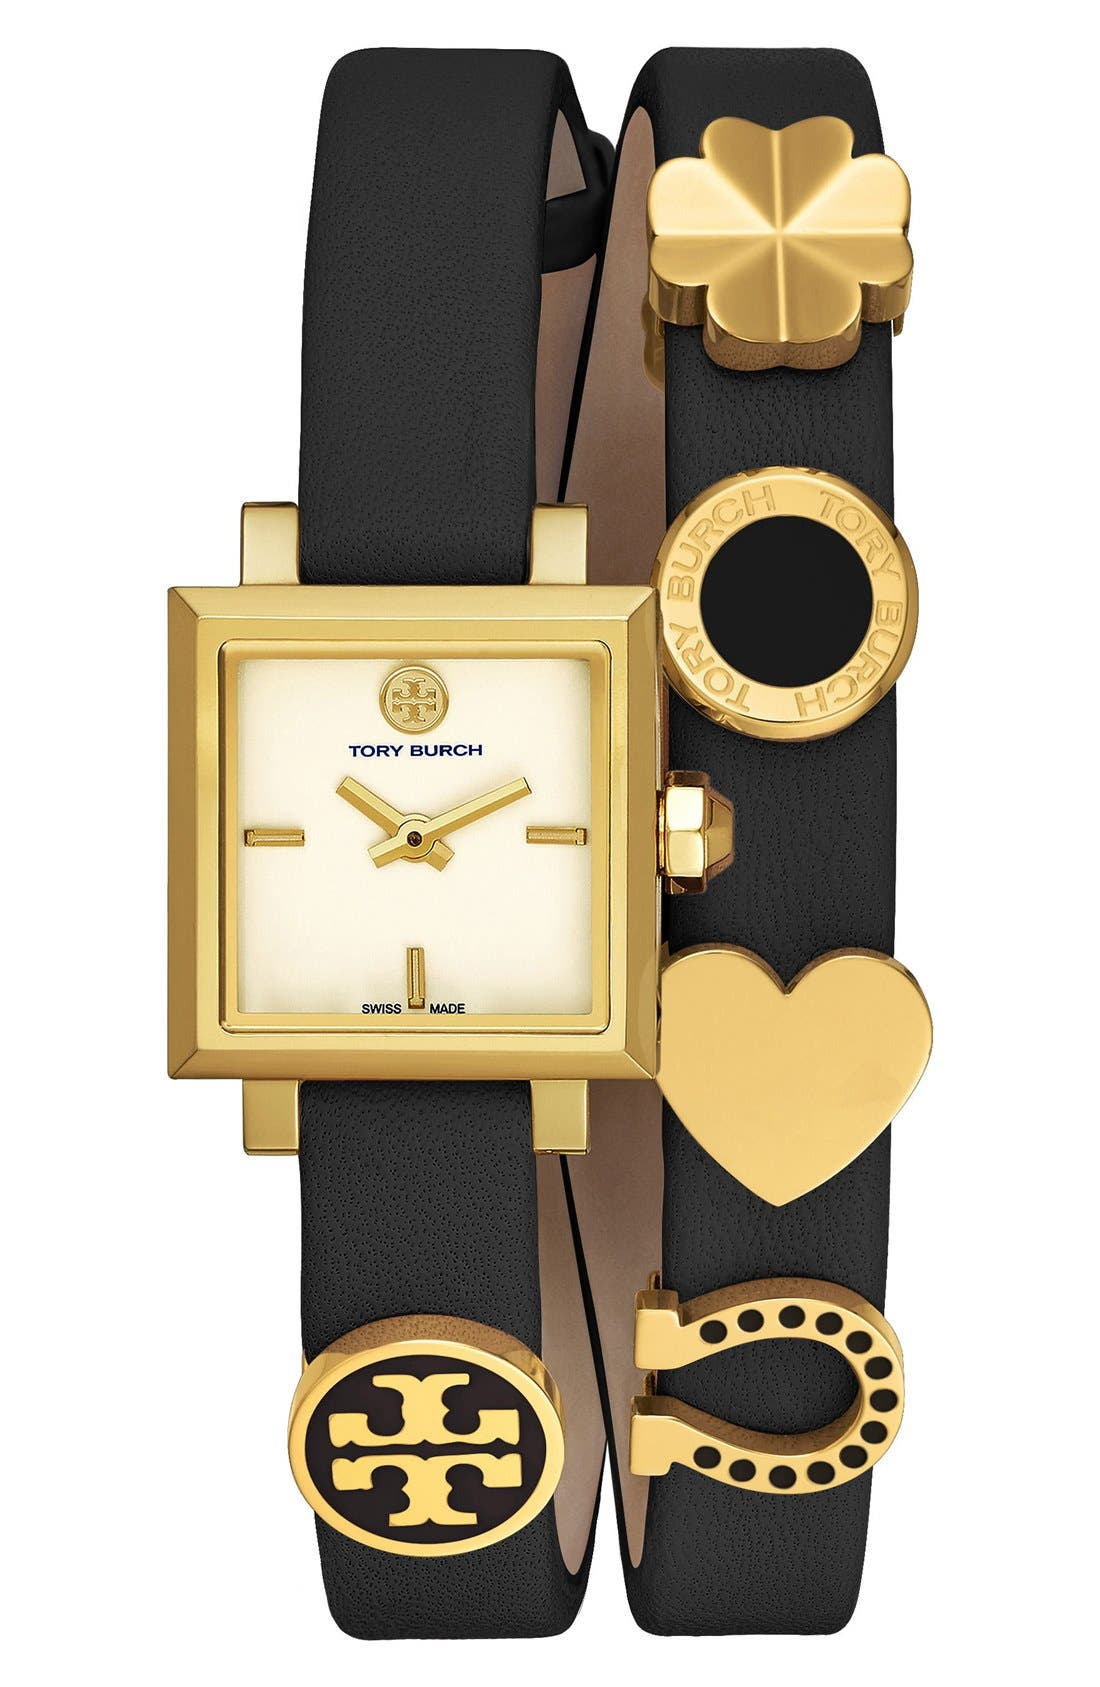 Main Image - Tory Burch 'Saucy' Double Wrap Leather Strap Watch, 25mm